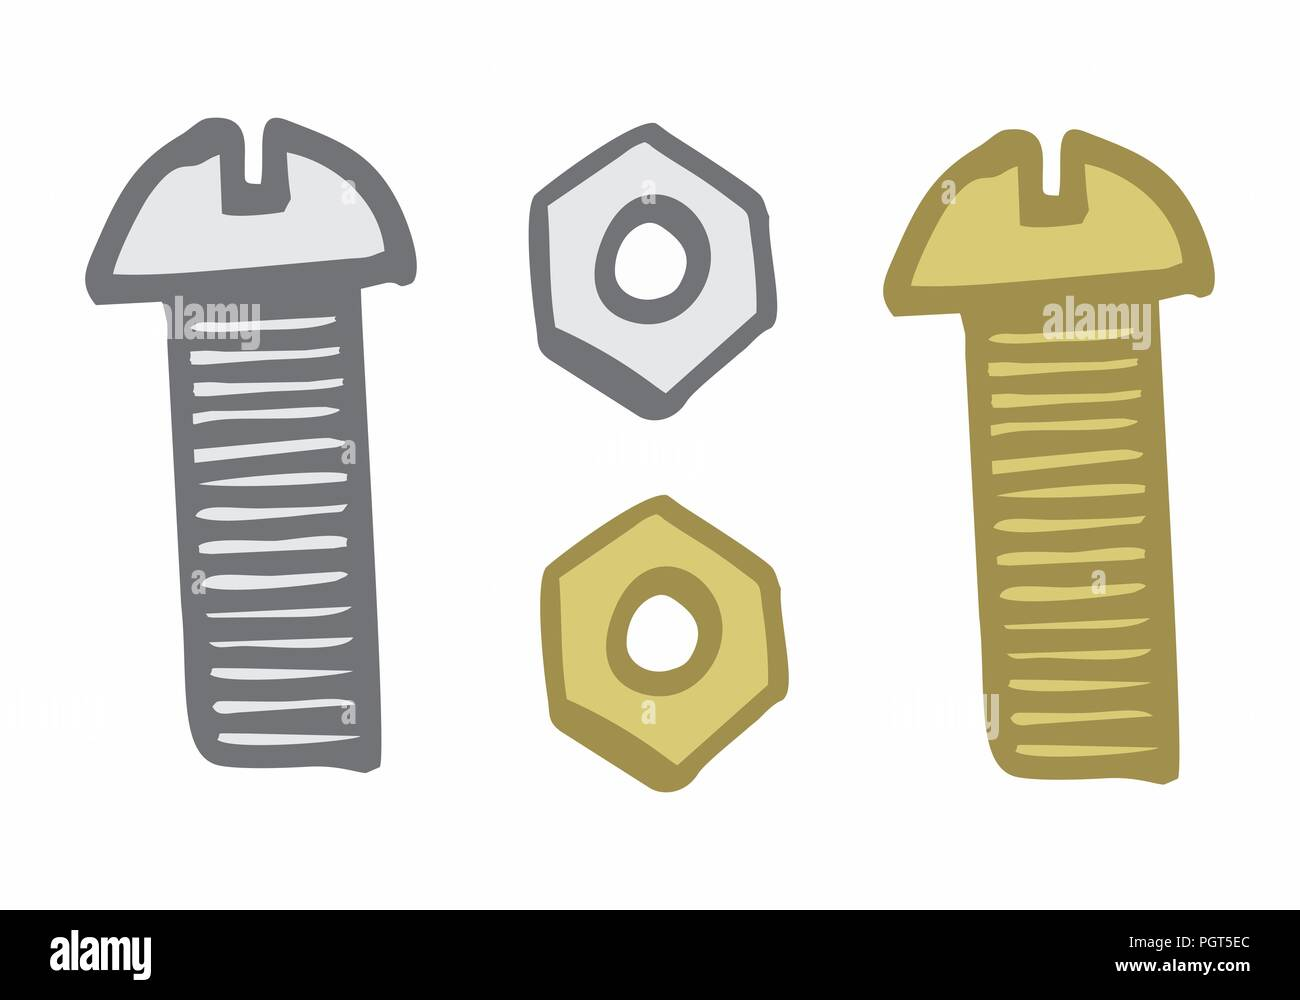 Hand-drawn style illustration of colorful bolt and nut on white background - Stock Vector